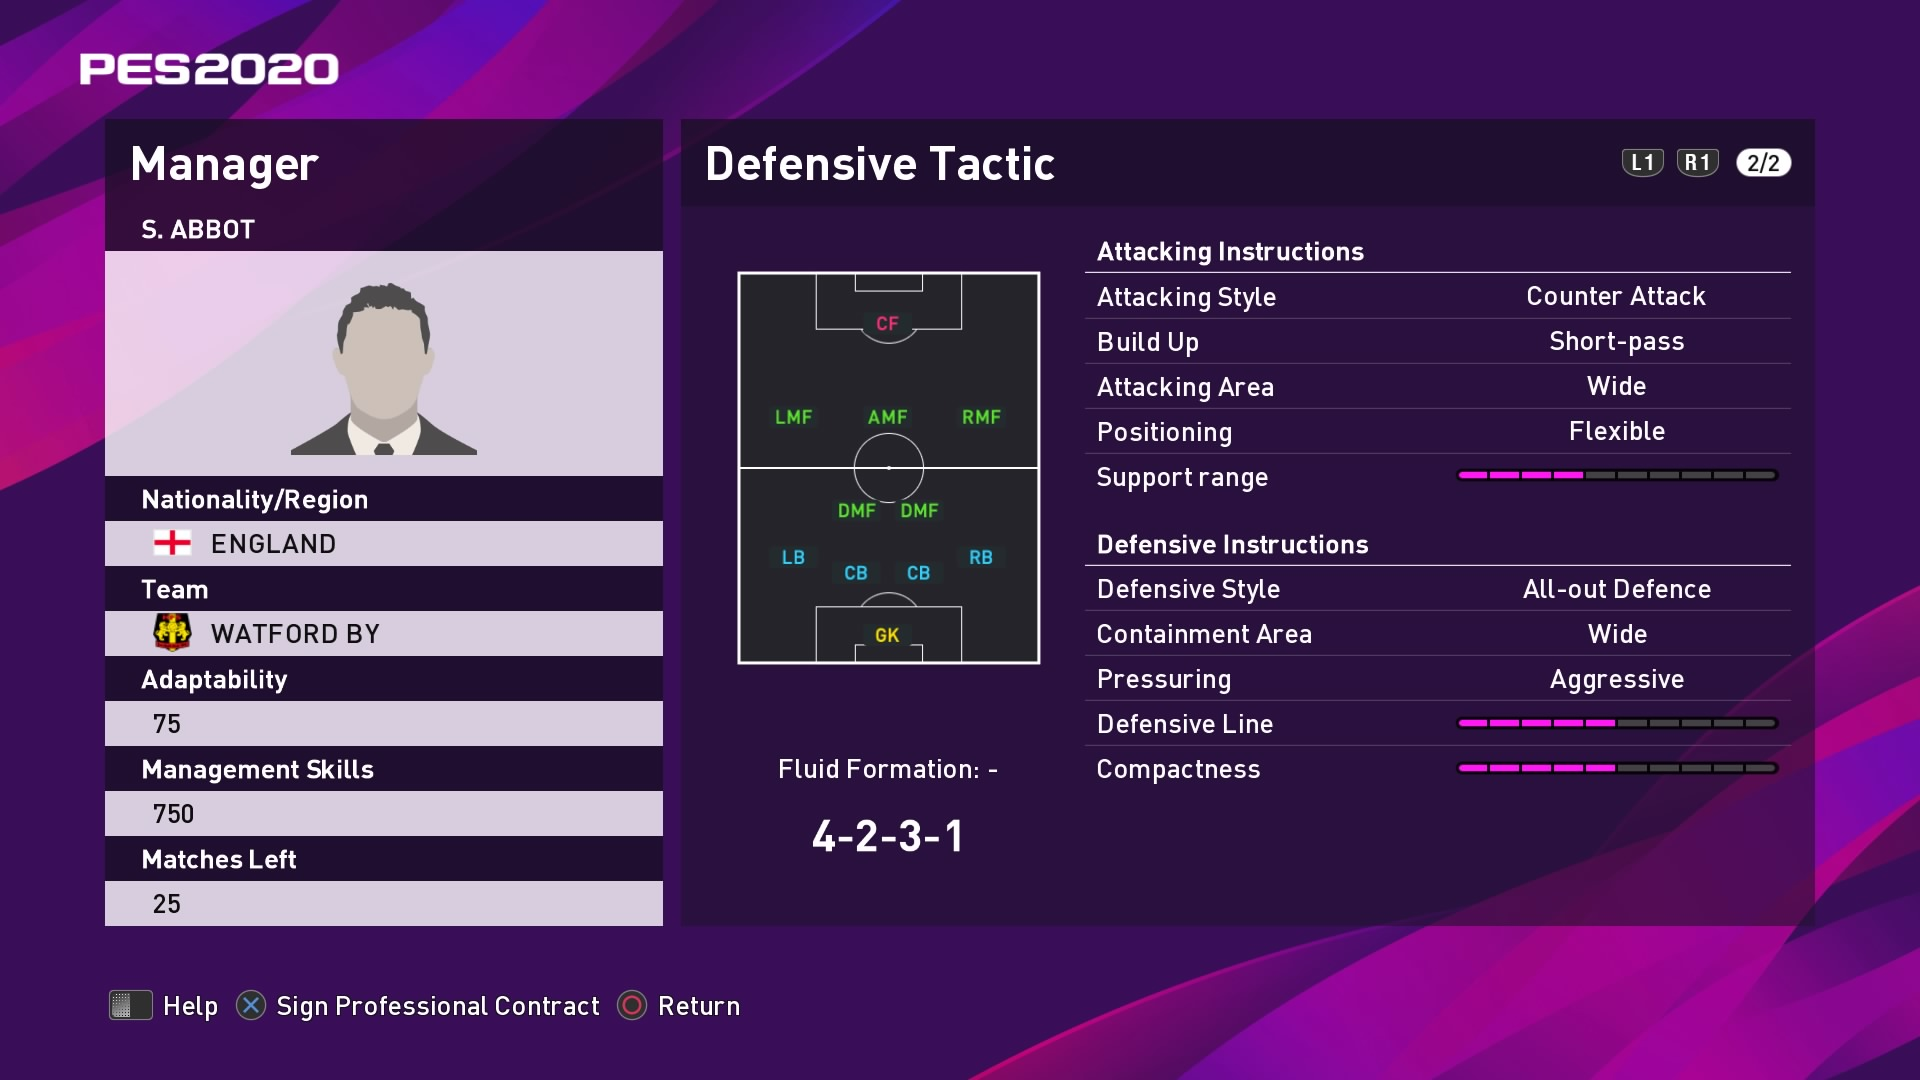 S. Abbot (Nigel Pearson) Defensive Tactic in PES 2020 myClub